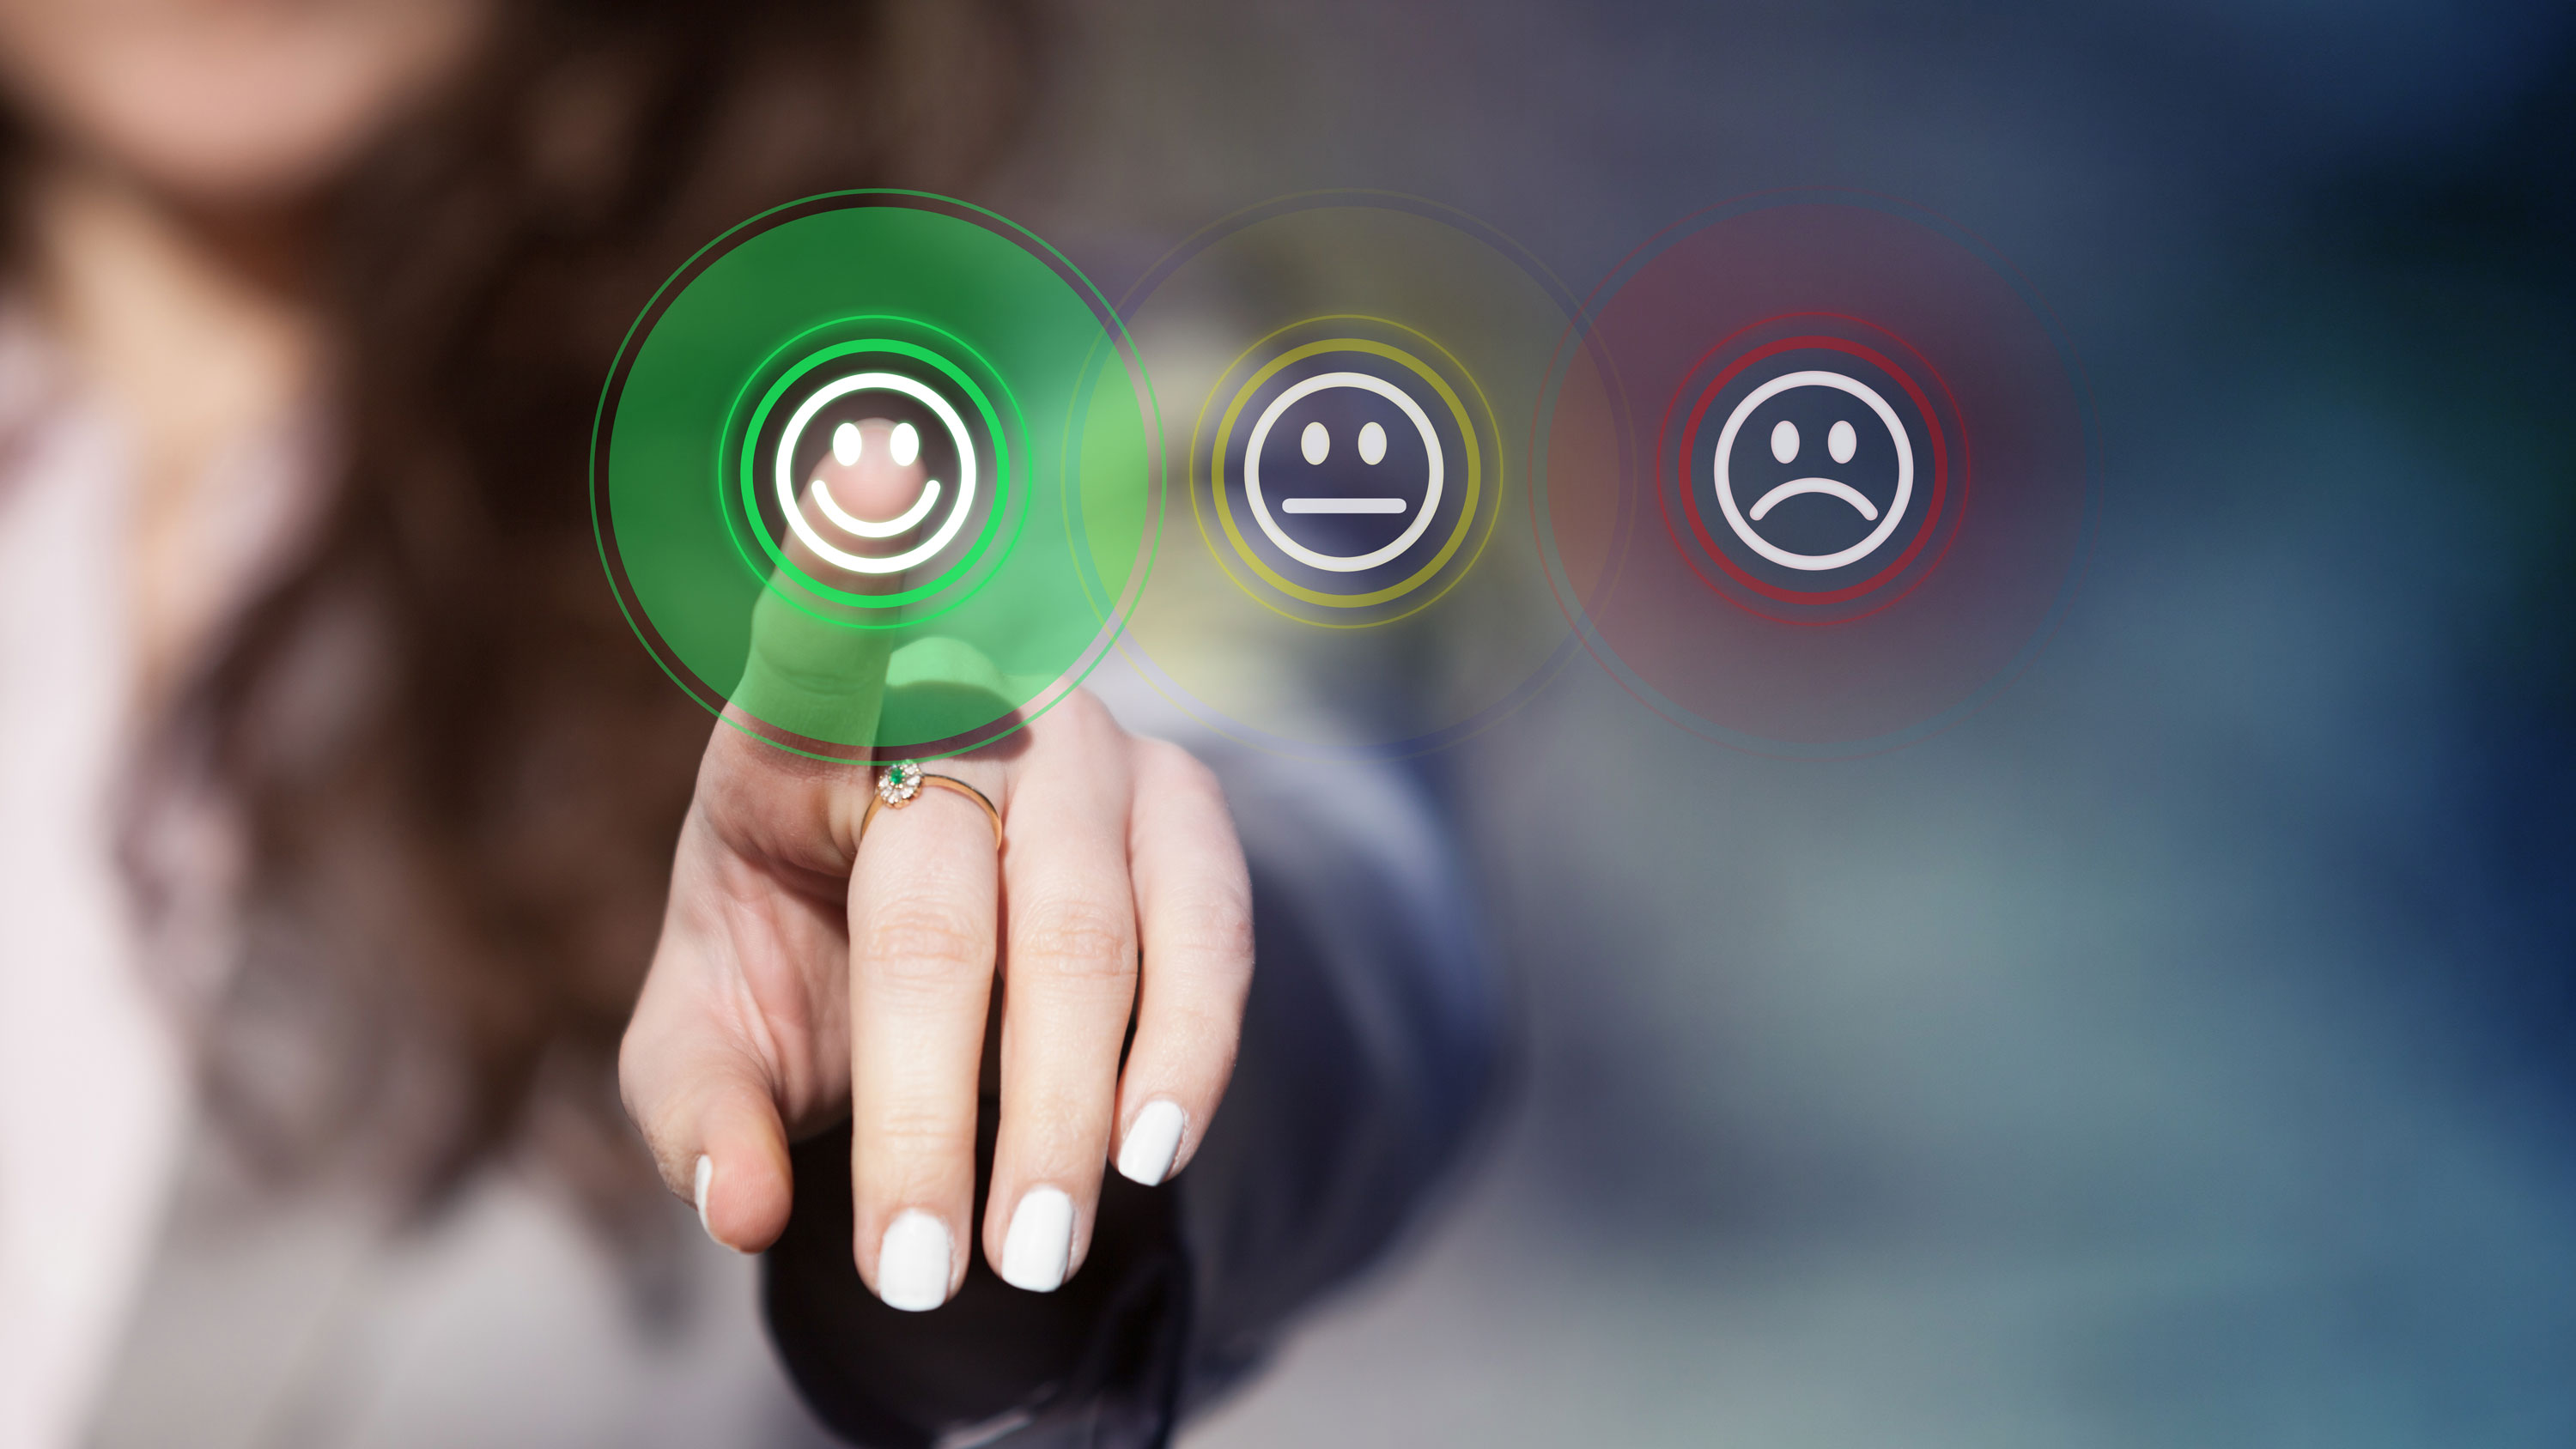 Improving customer service through technology